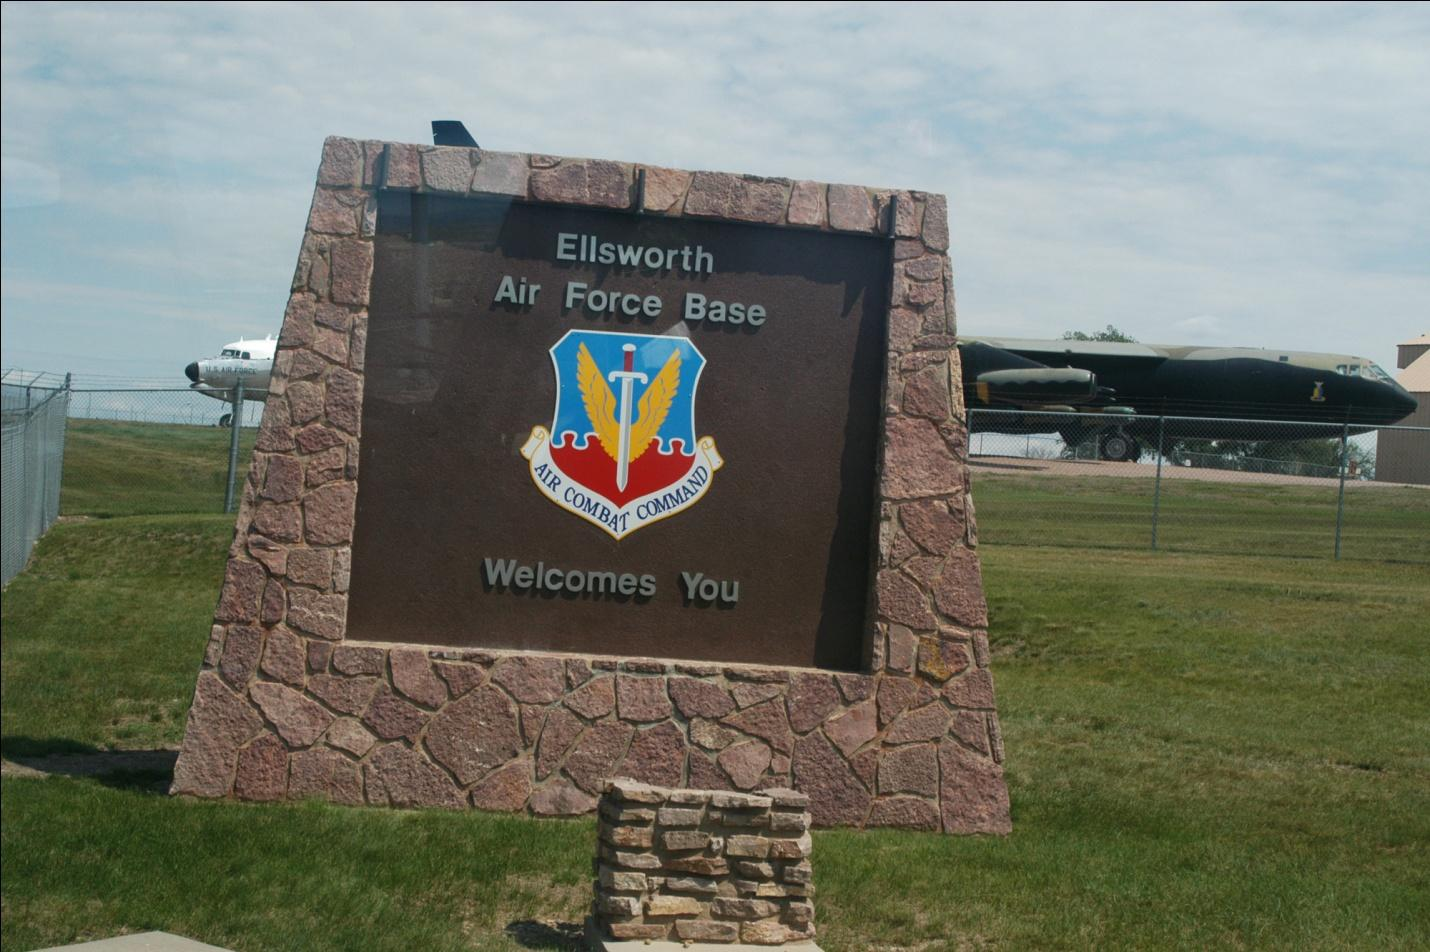 C:UsersWorkDesktopArmy BasesAirforceEllsworth Air Force Base in Rapid City, SD5662854509_32ec64a12a_o.jpg